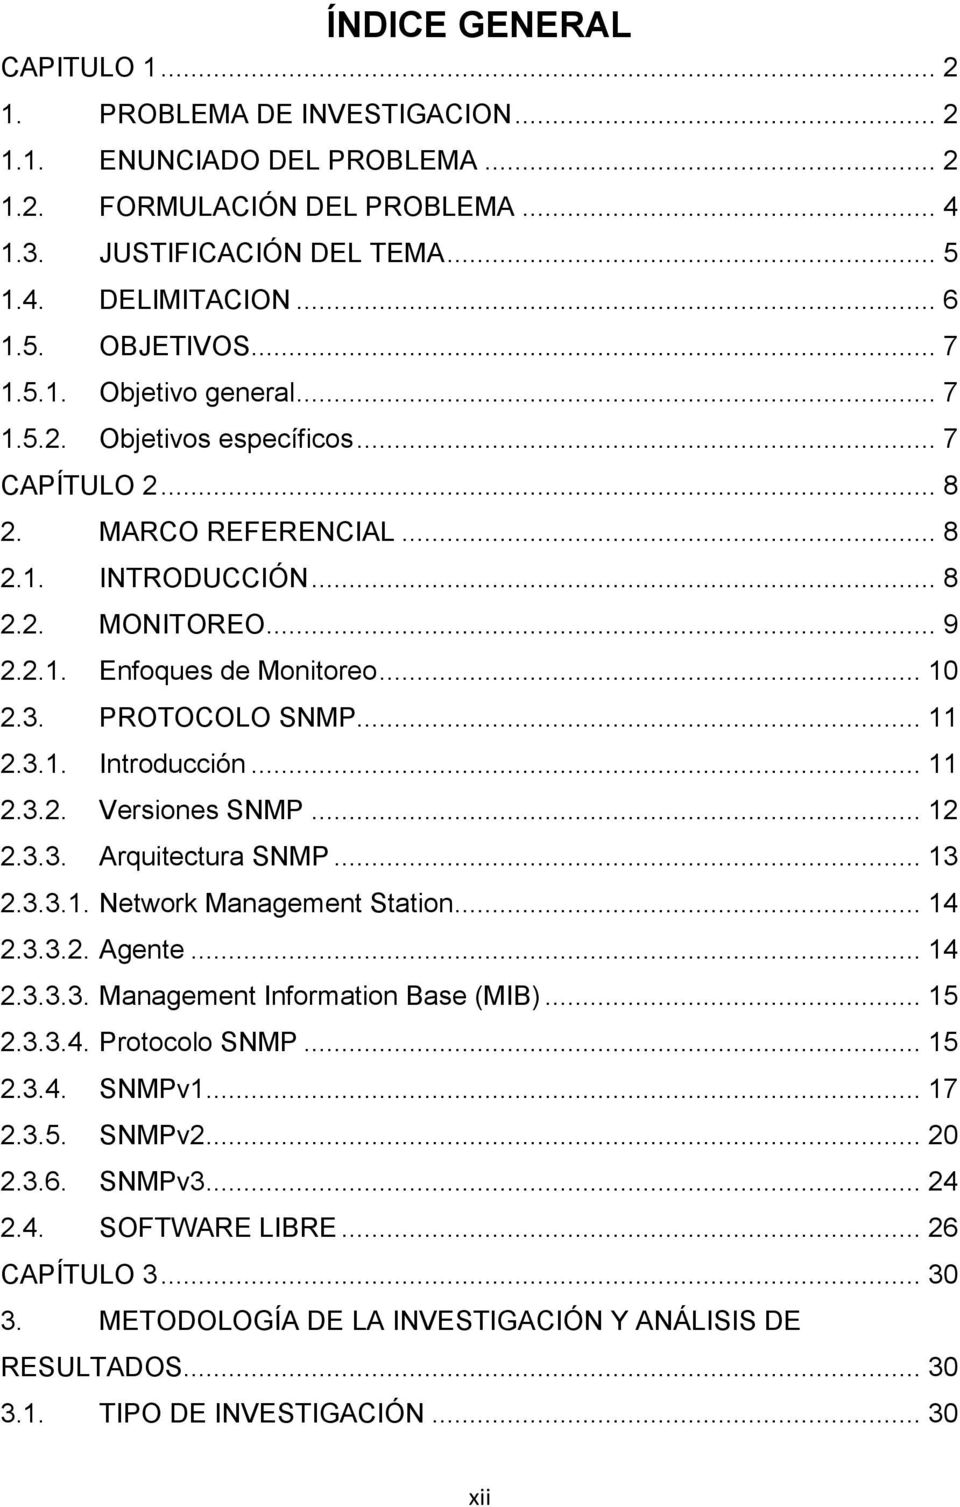 PROTOCOLO SNMP... 11 2.3.1. Introducción... 11 2.3.2. Versiones SNMP... 12 2.3.3. Arquitectura SNMP... 13 2.3.3.1. Network Management Station... 14 2.3.3.2. Agente... 14 2.3.3.3. Management Information Base (MIB).